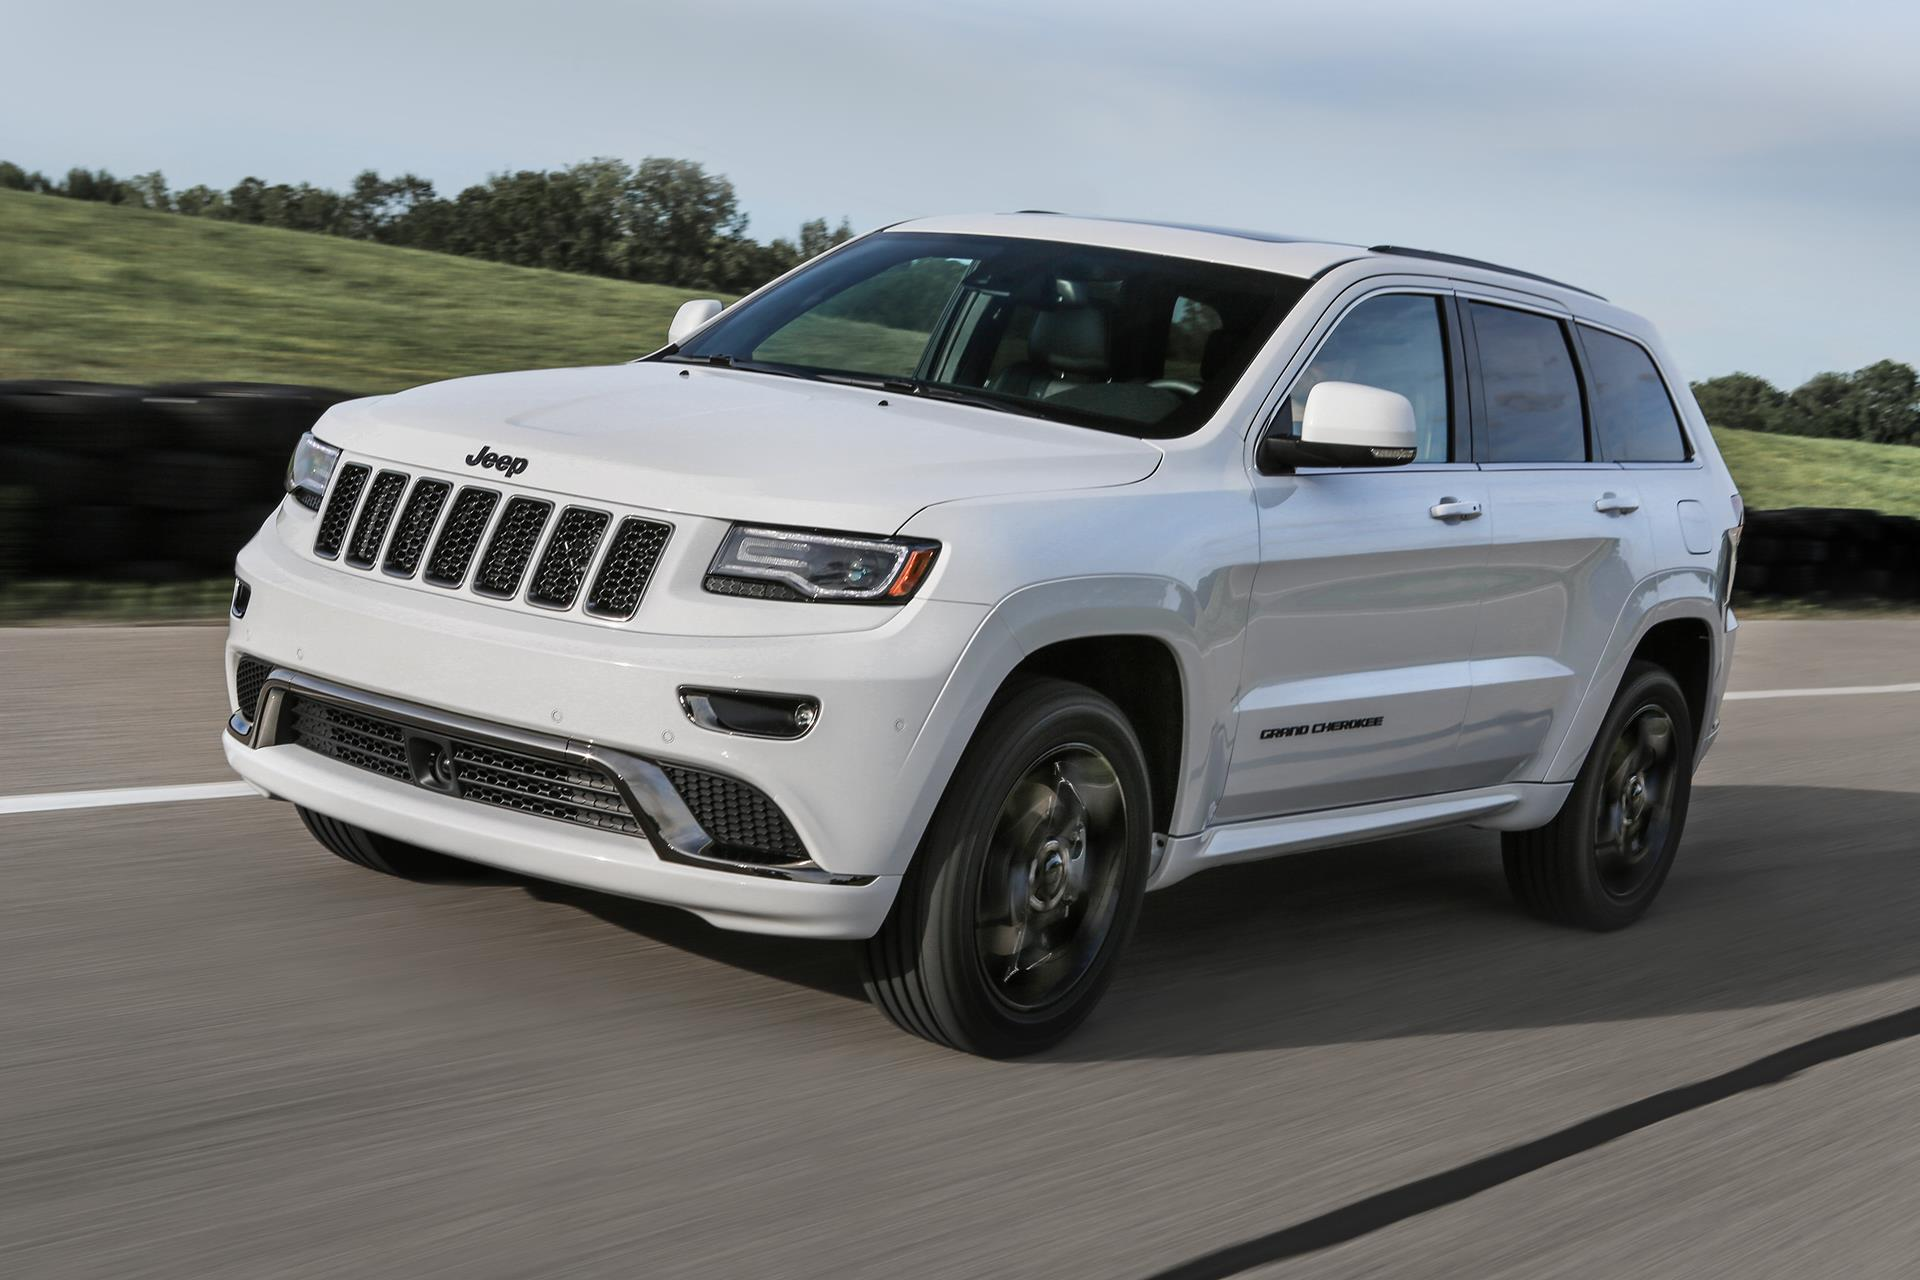 jeep grand cherokee picture - photo #46